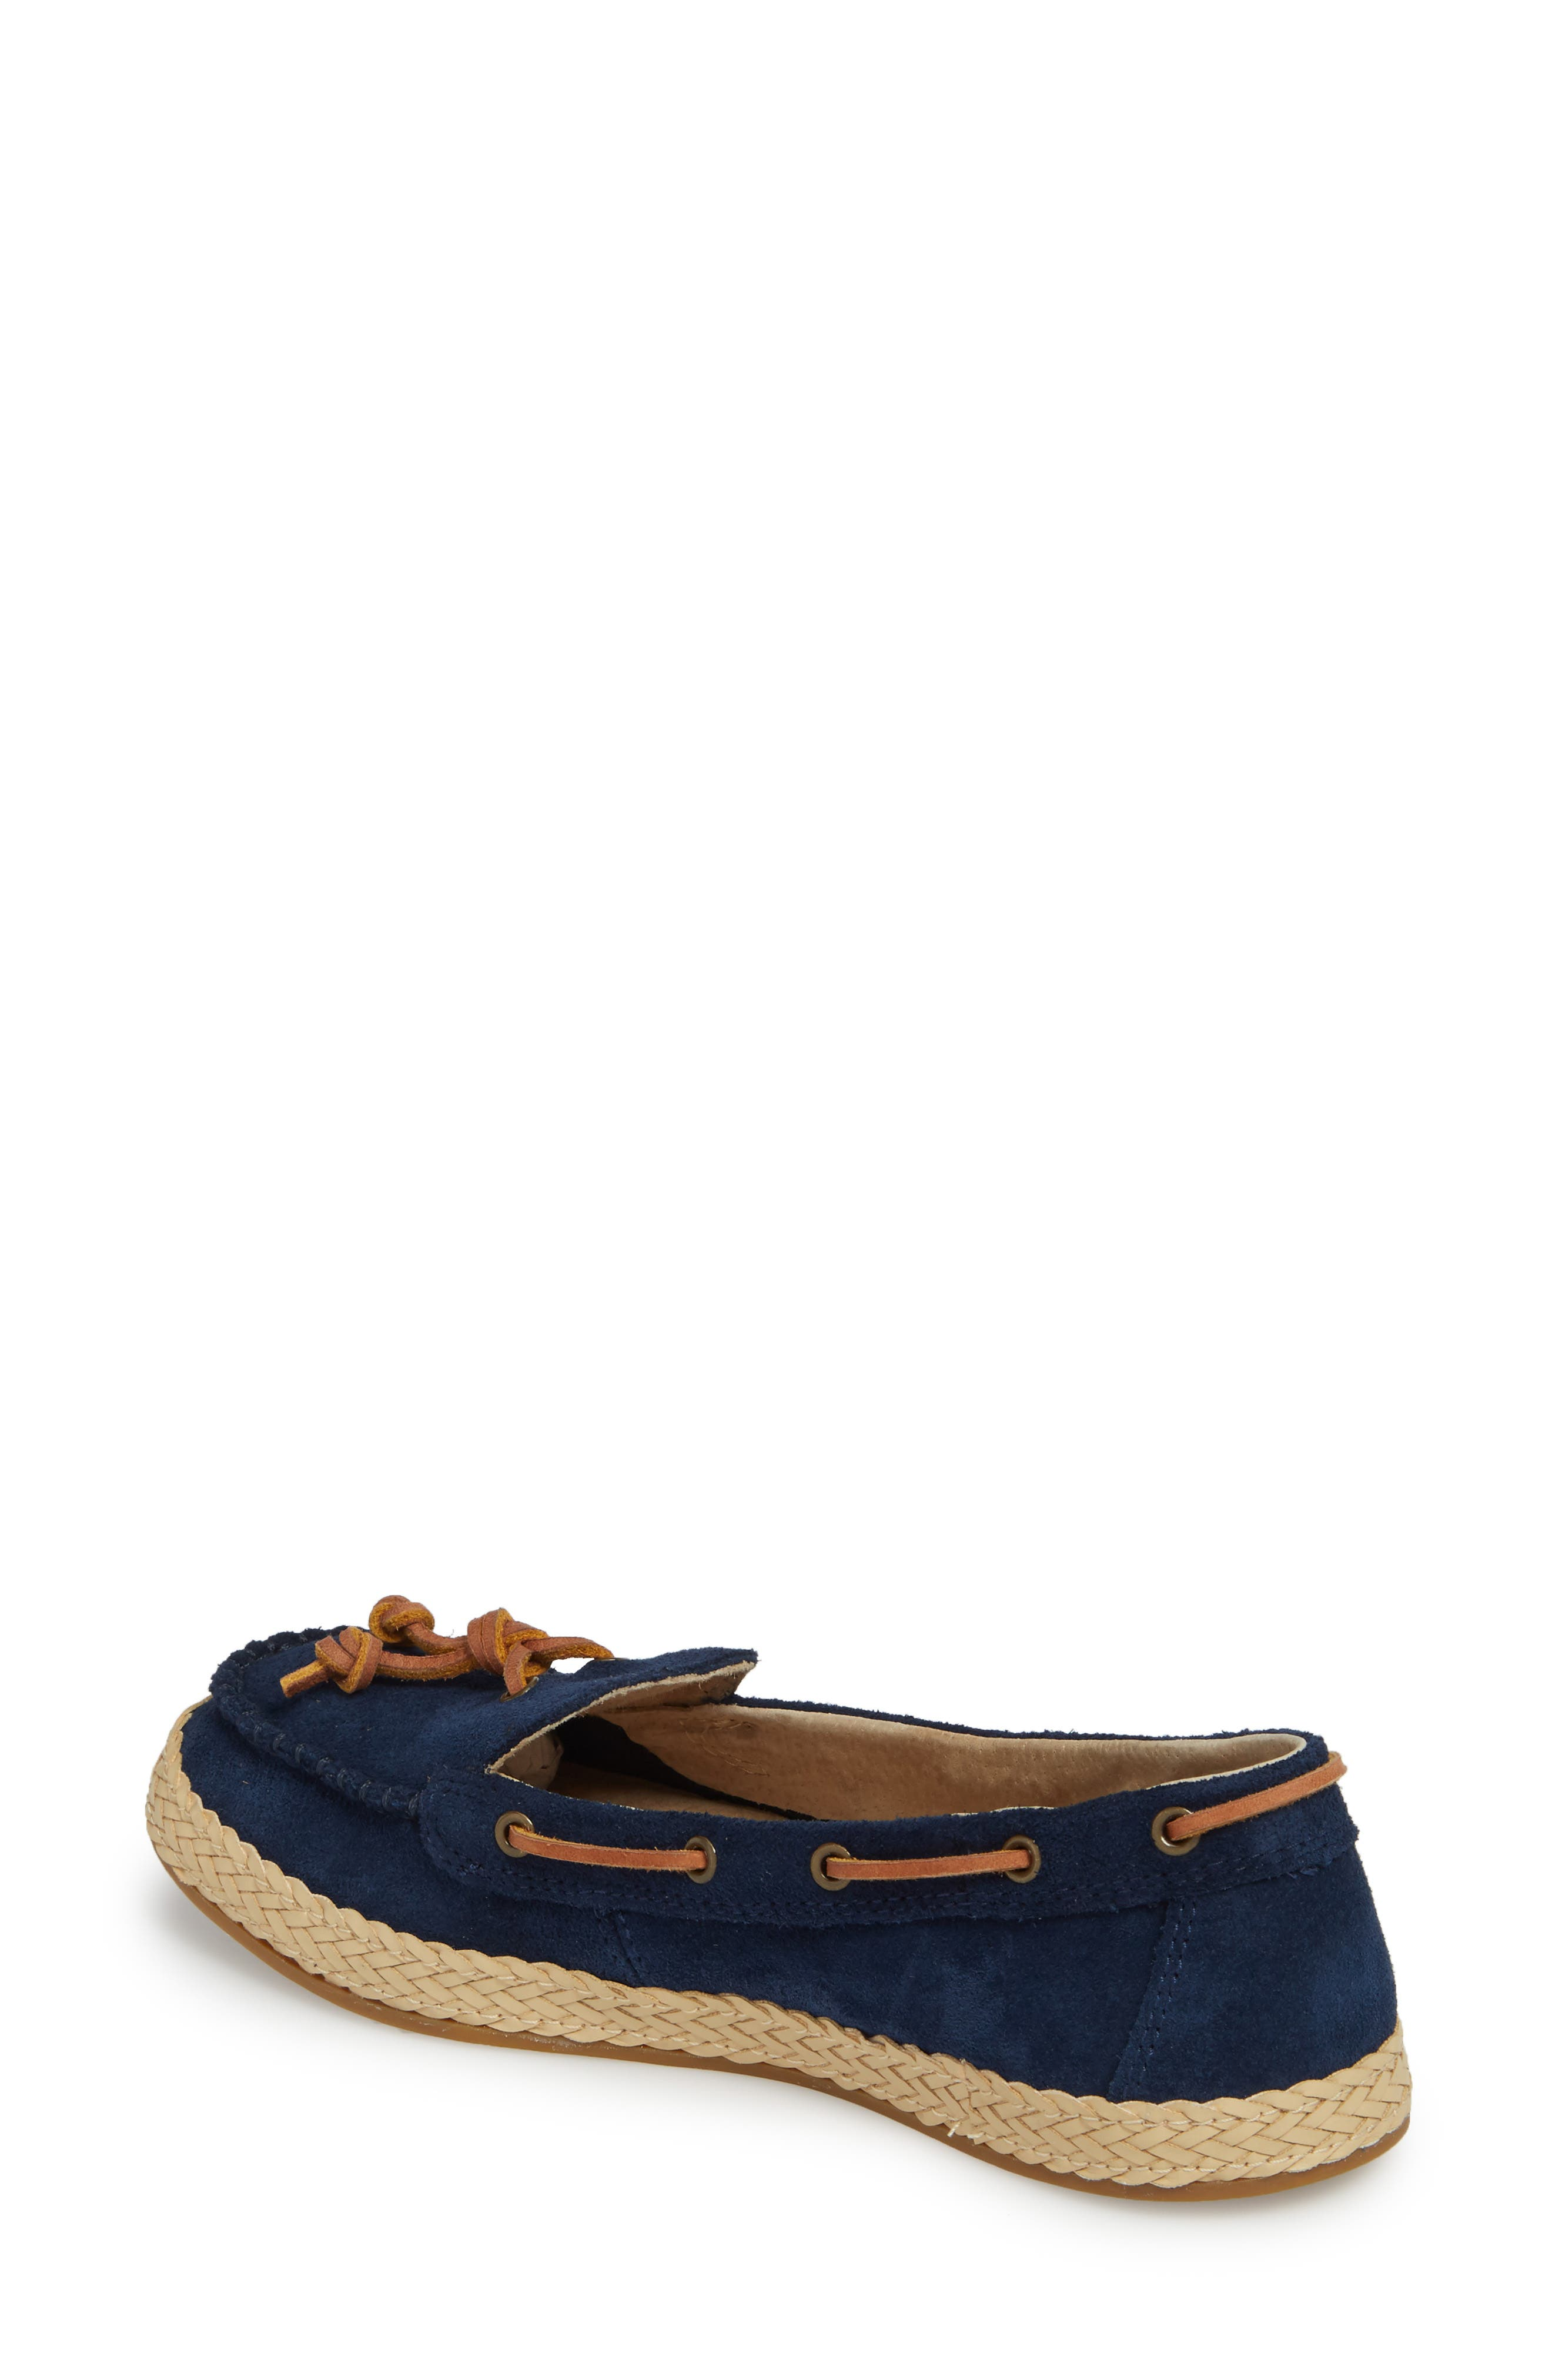 Channtal Loafer,                             Alternate thumbnail 4, color,